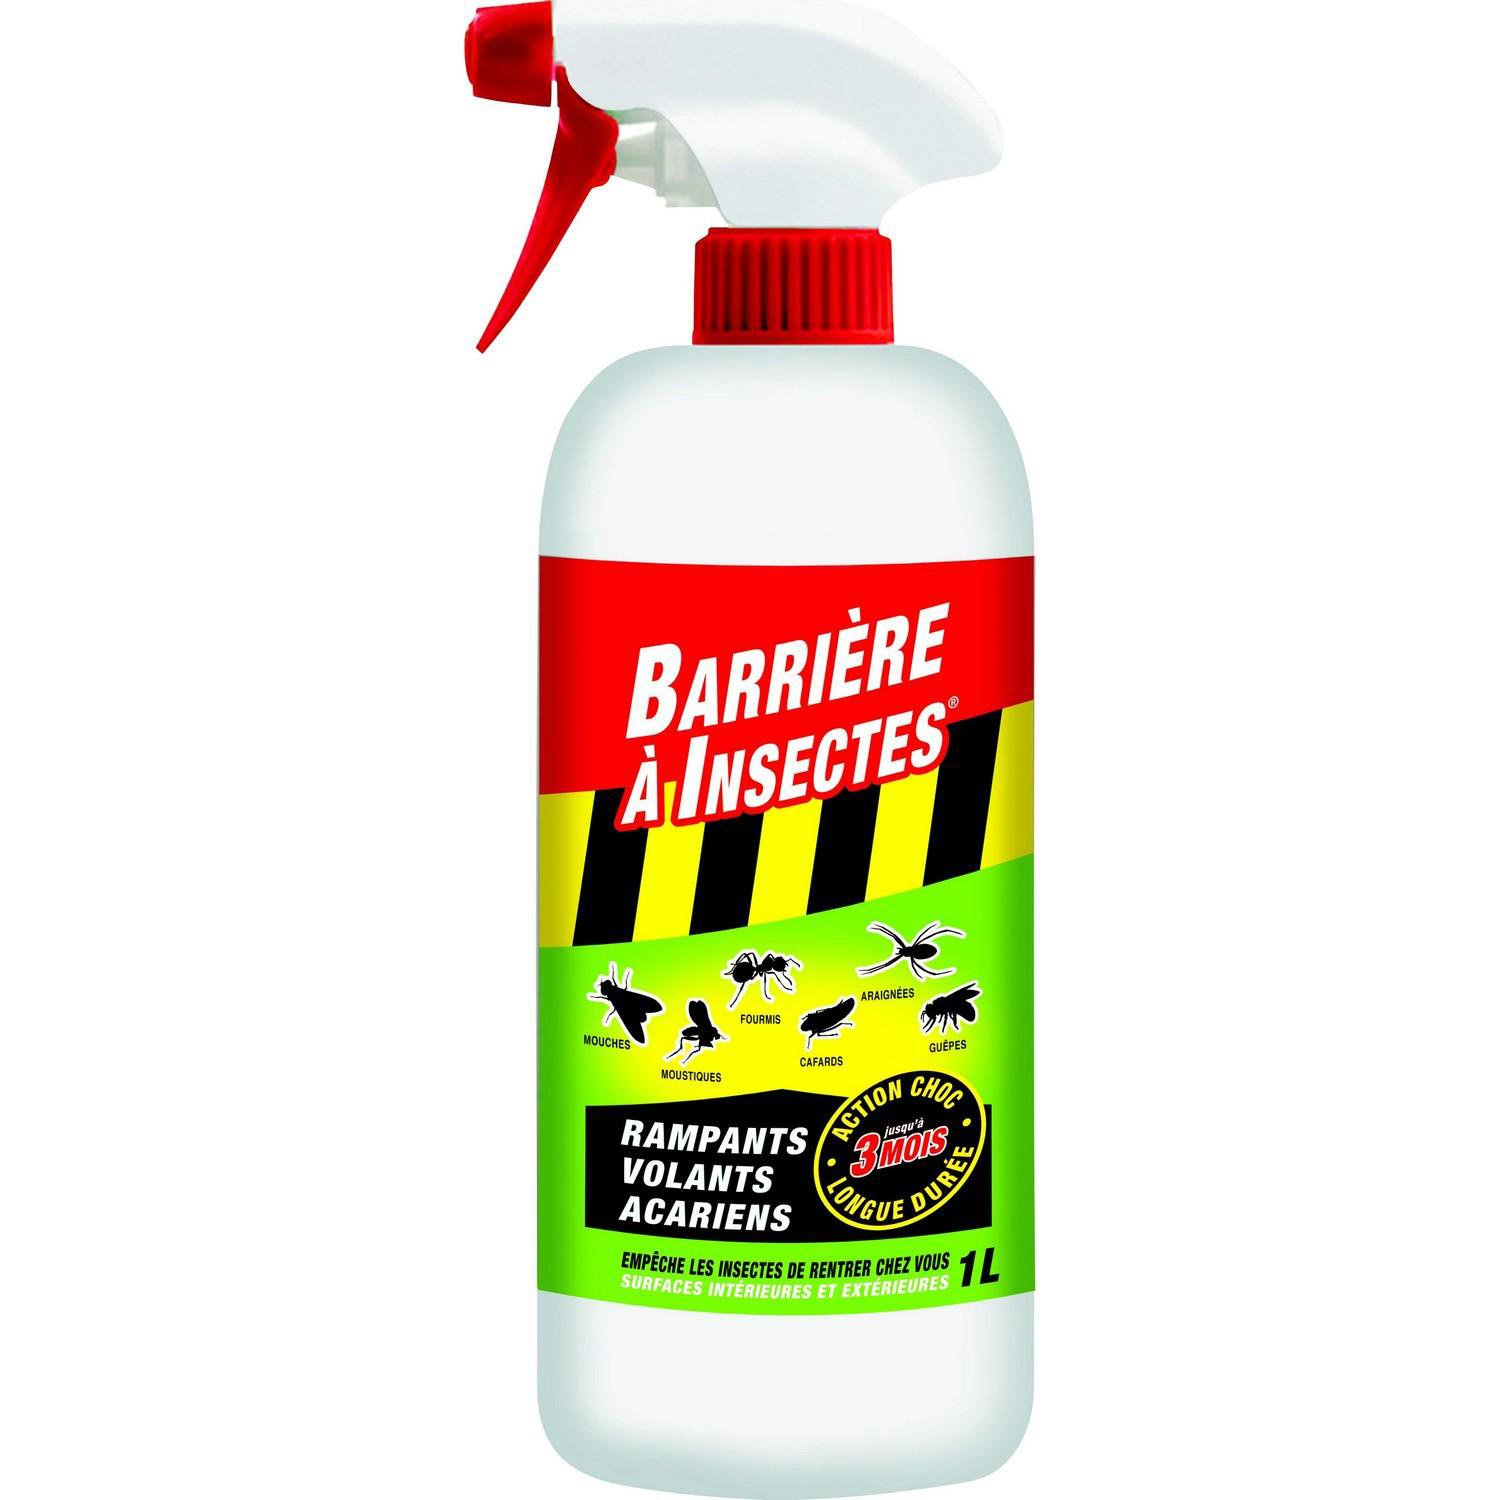 A Rosol Antirampants Et Volants Barriere A Insectes 1l Leroy Merlin